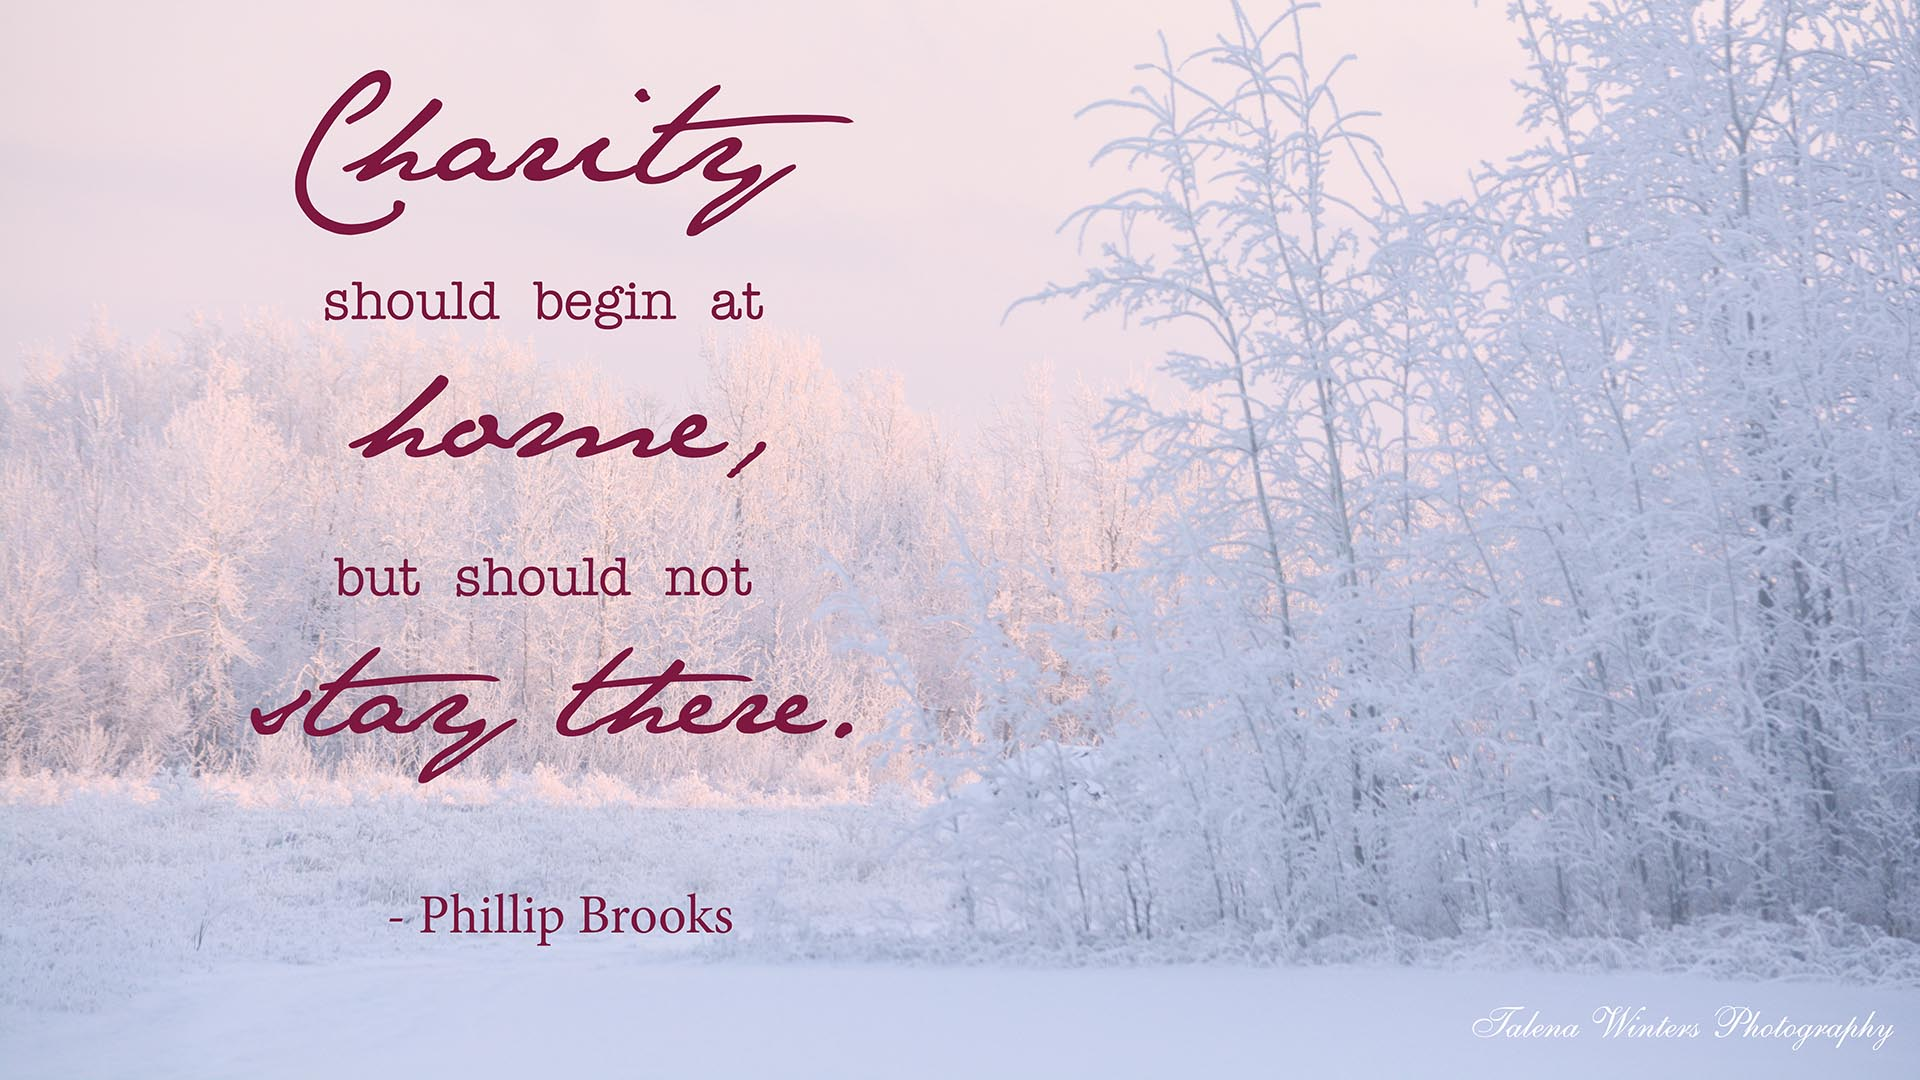 """Charity should begin at home, but should not stay there."" Free quote desktop wallpaper from www.talenawinters.com."